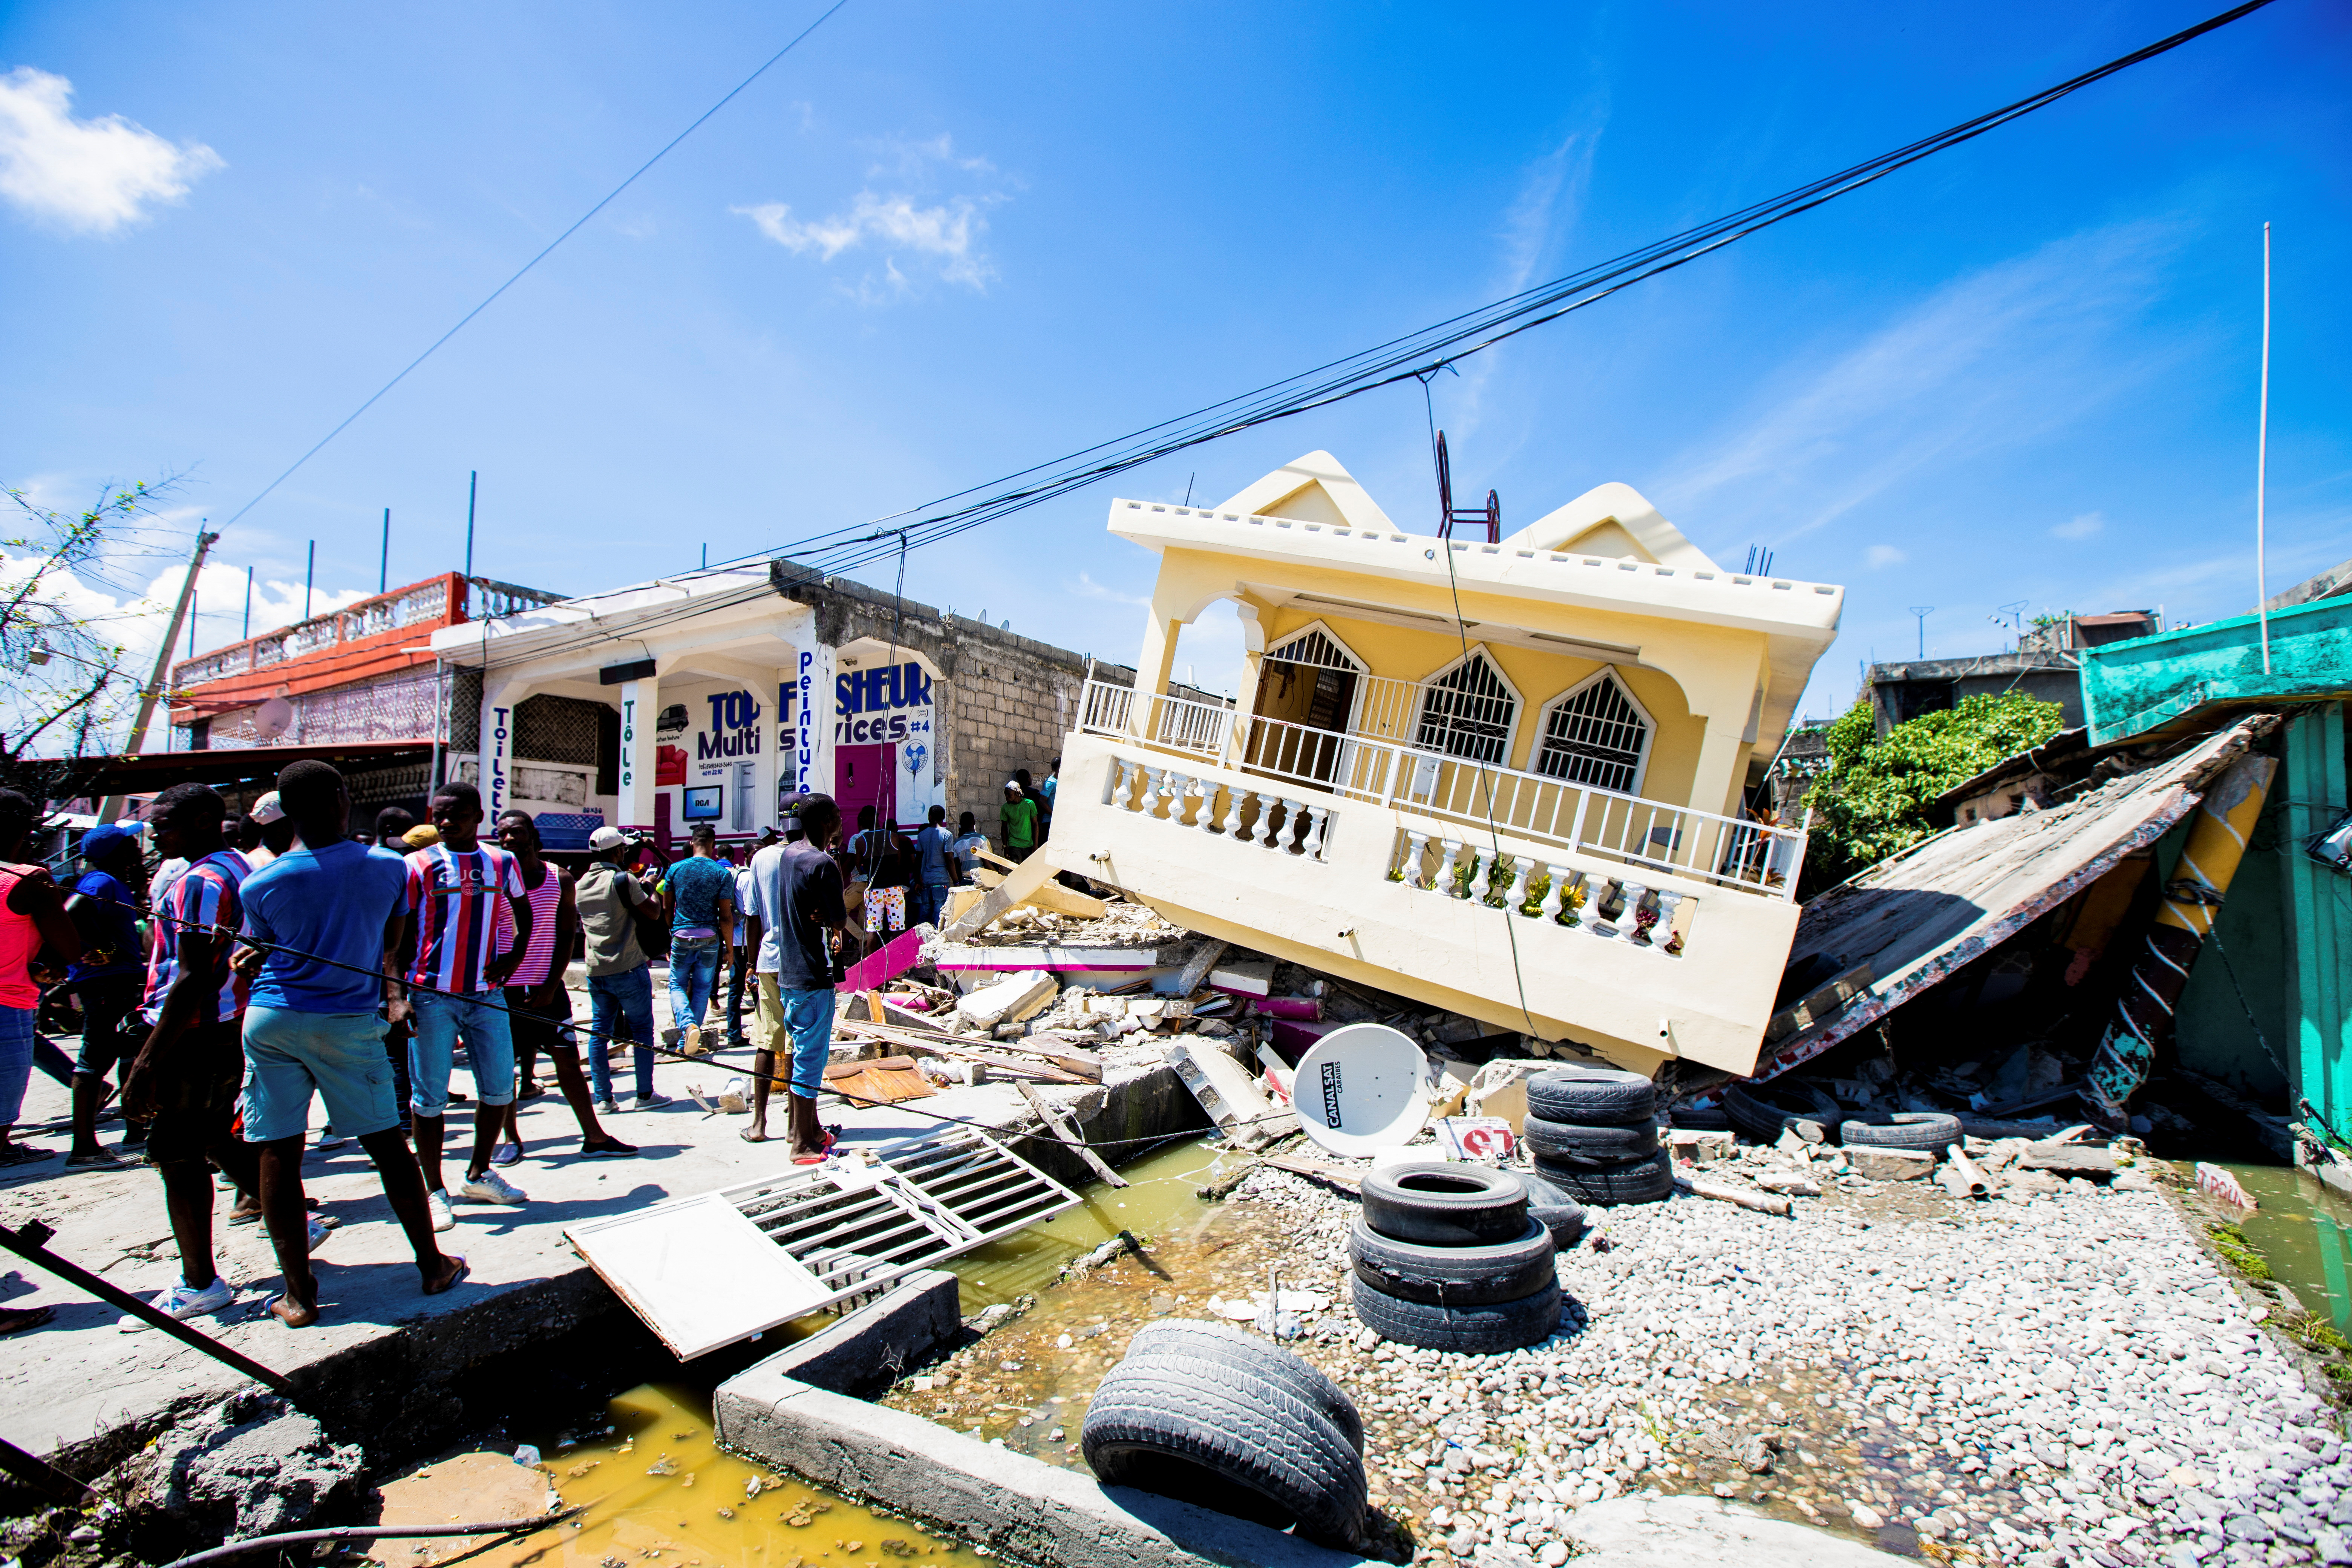 People stand next to a house destroyed following a 7.2 magnitude earthquake in Les Cayes, Haiti August 14, 2021. REUTERS/Ralph Tedy Erol NO RESALES. NO ARCHIVES